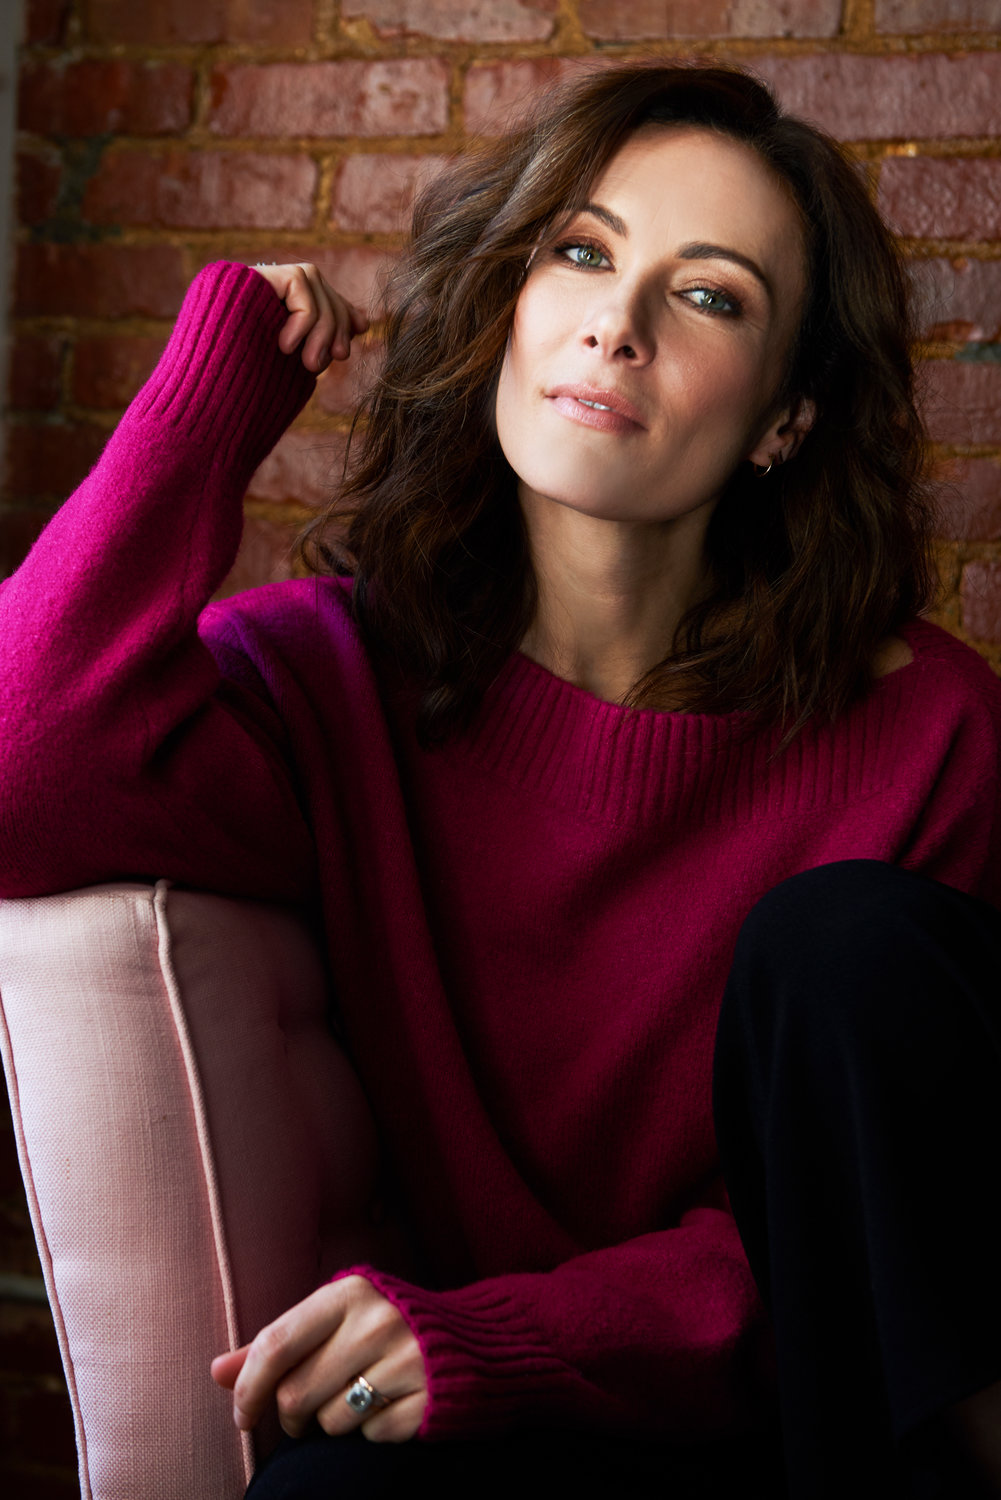 Laura Benanti shares her career highlights in her solo show.